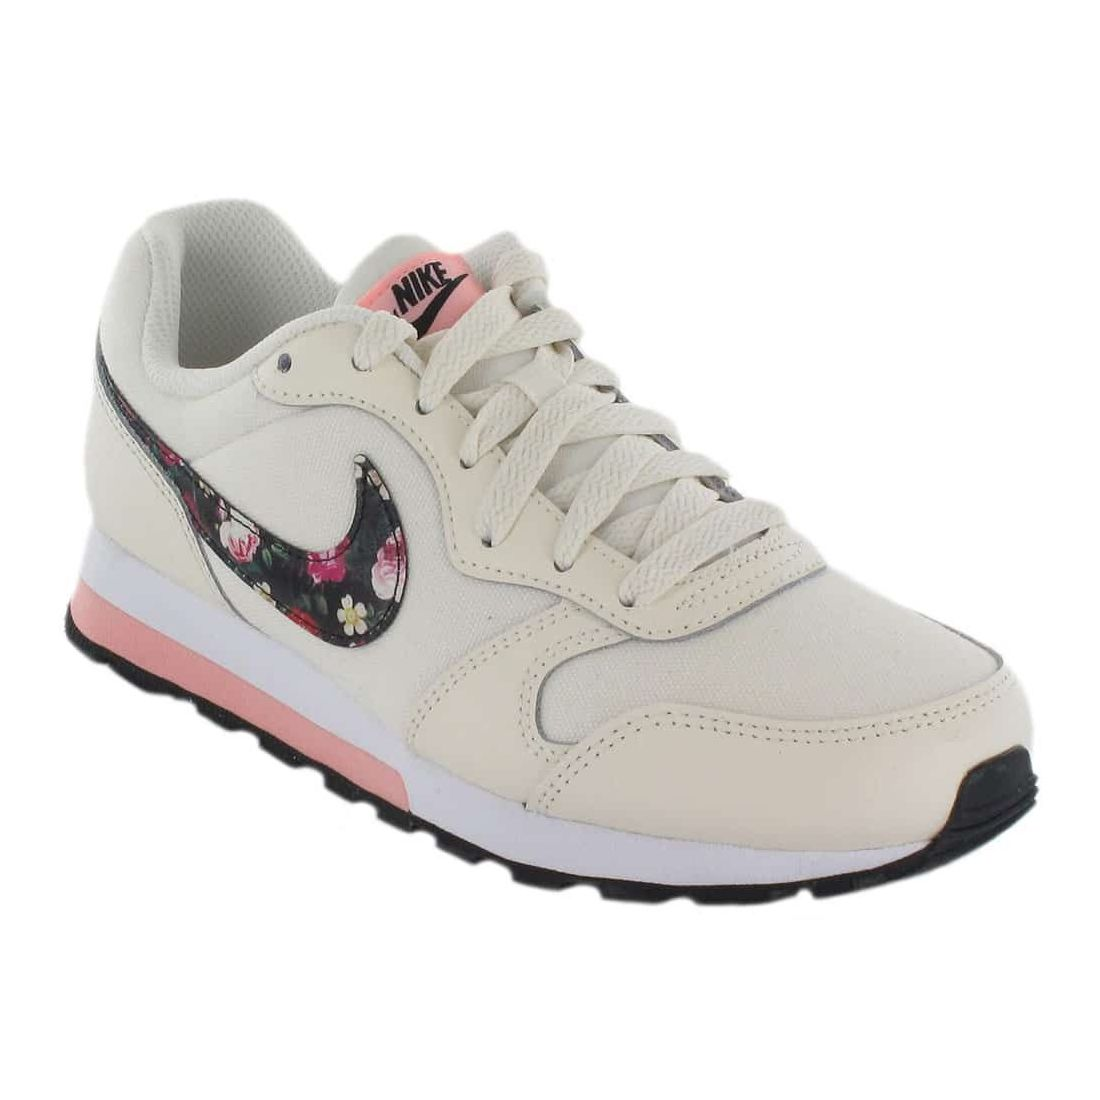 Nike MD Runner 2 VF GS Nike Casual Footwear Lifestyle Junior Sizes: 35,5, 36,5, 37,5, 38, 38,5; Color: beige